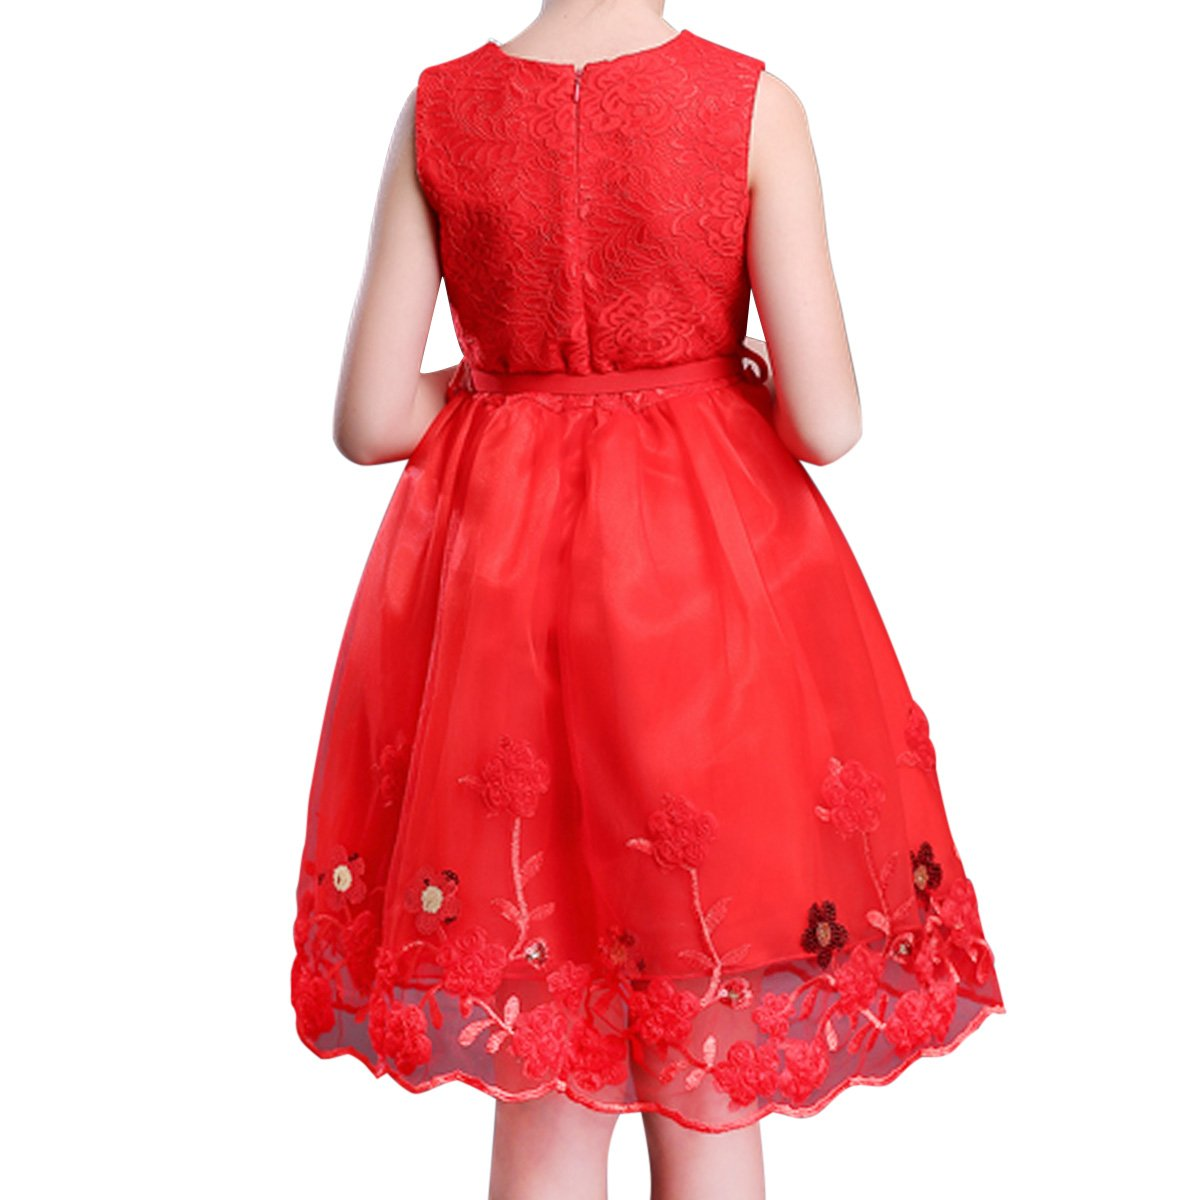 ecbb820ab35 BANGBO LEATHER Summer Sleeveless Dress Lace Formal Princess Dress Cute and Elegant  Party Dress with Belt for Girls 5-12 Years Old (10-11 Years